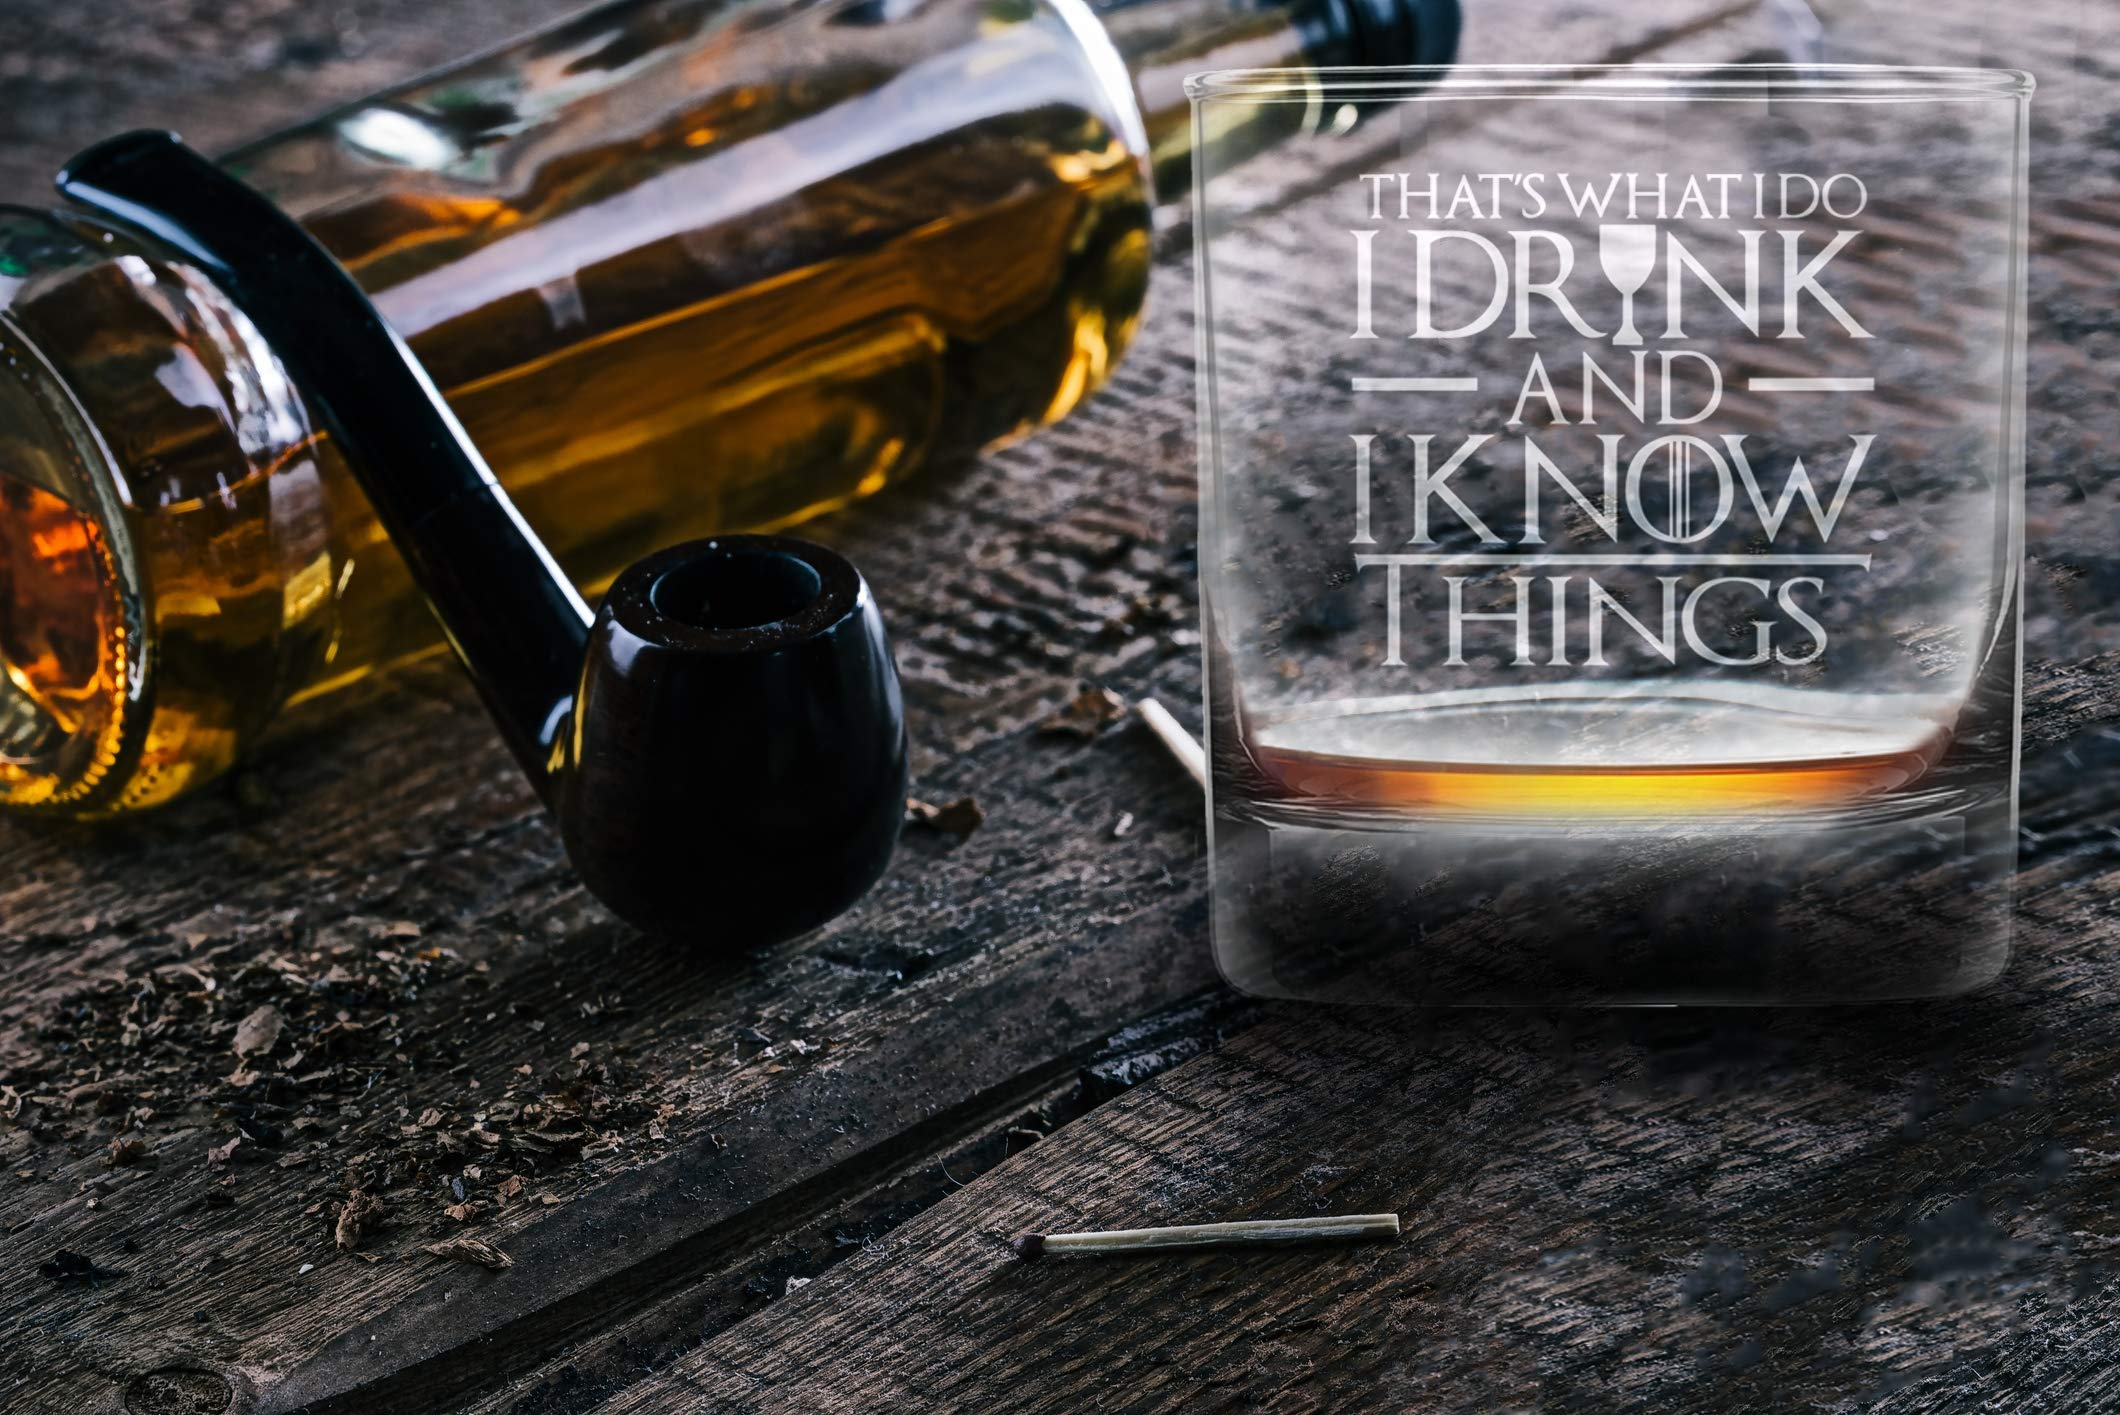 I Drink And I Know Things Highball Whiskey Glasses - Set of 2 - by FOLE (Image #6)